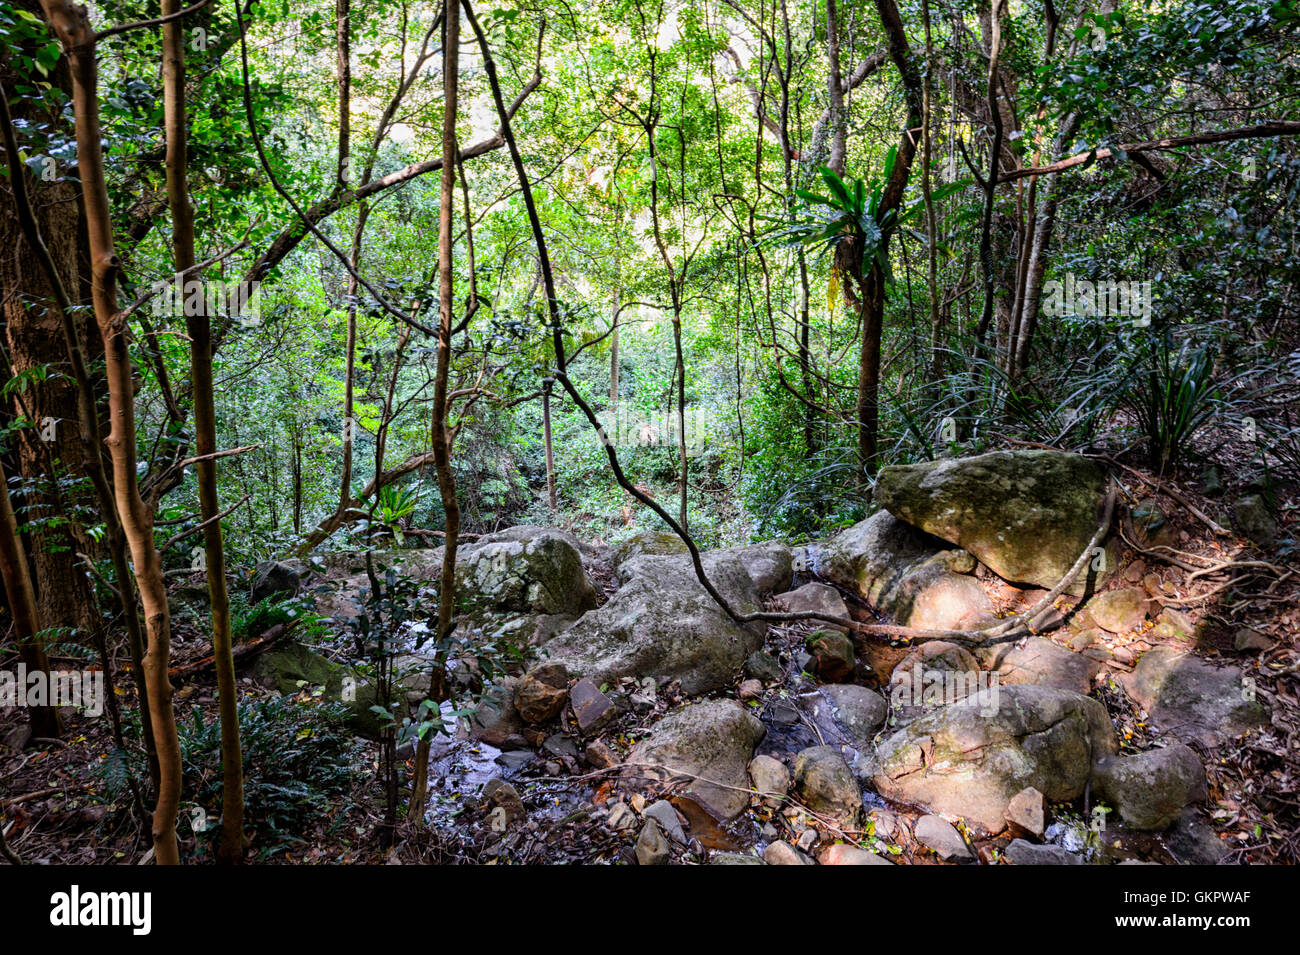 Lianas growing in the temperate Minnamurra Rainforest Centre, New South Wales, NSW, Australia - Stock Image